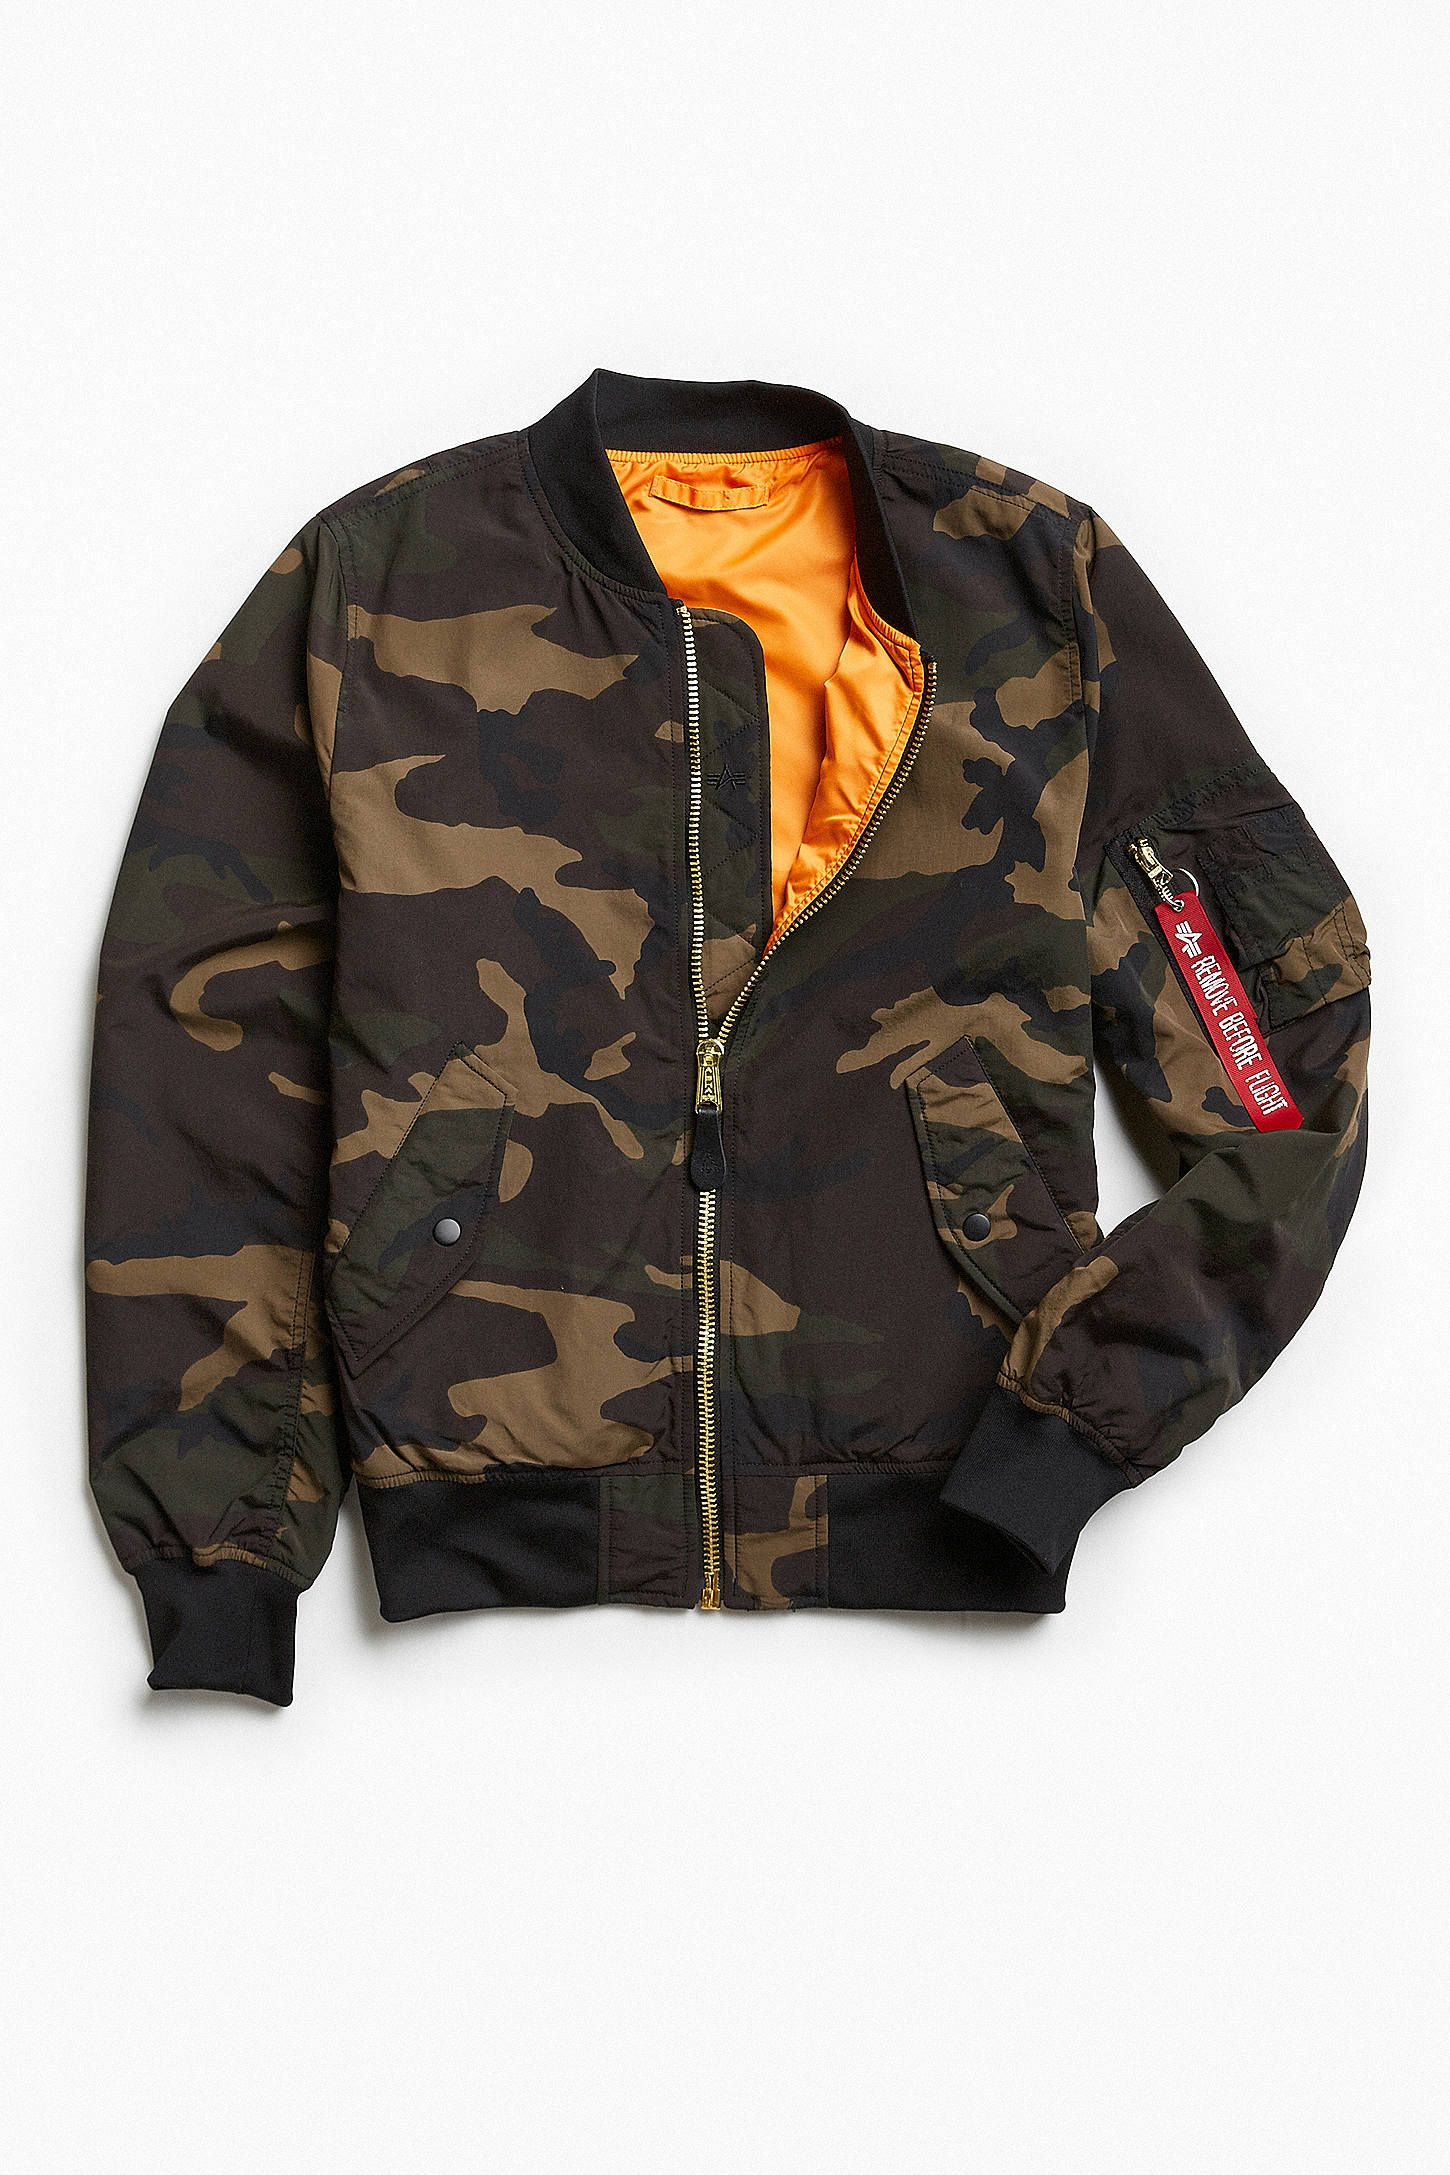 294aa619a Alpha Industries L-2B Scout Bomber Jacket | Scouts, Shops and Bomber ...